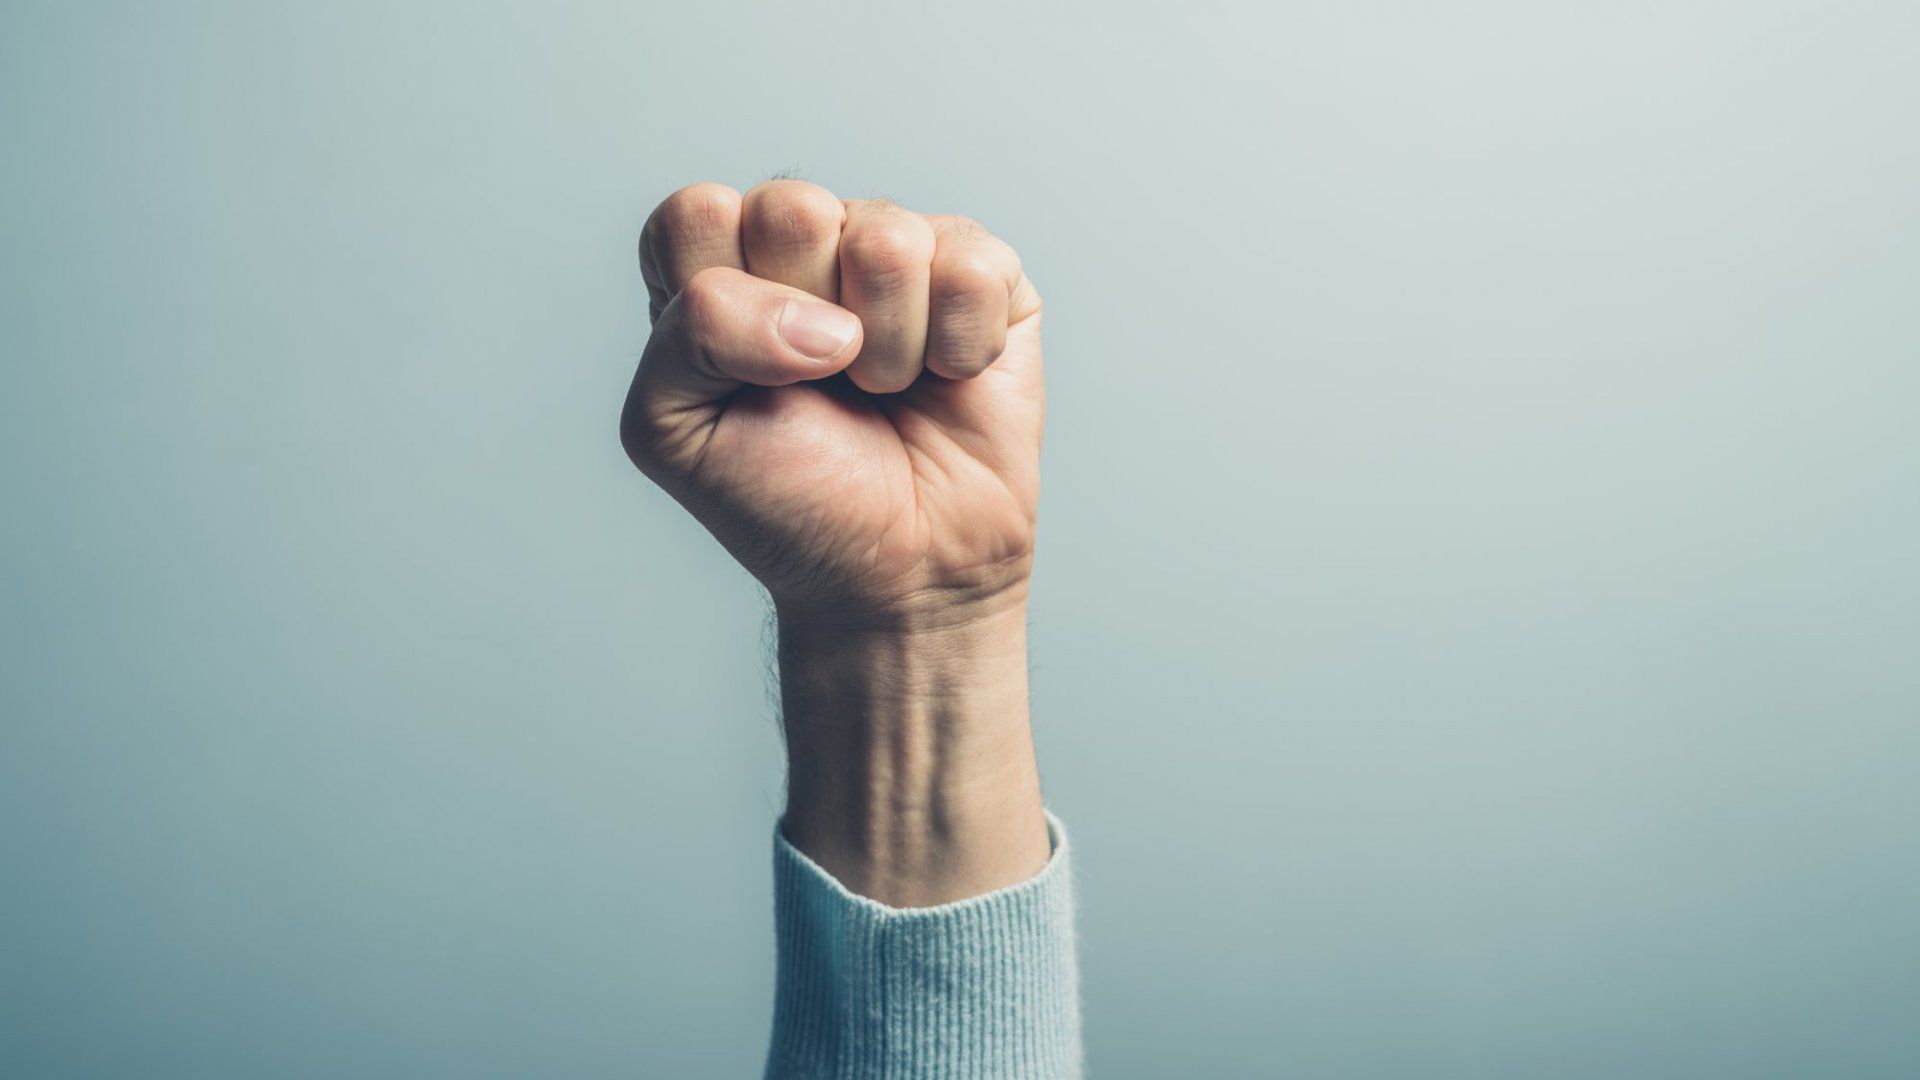 5 Ways to Build Grit and Perseverance Across Your Team